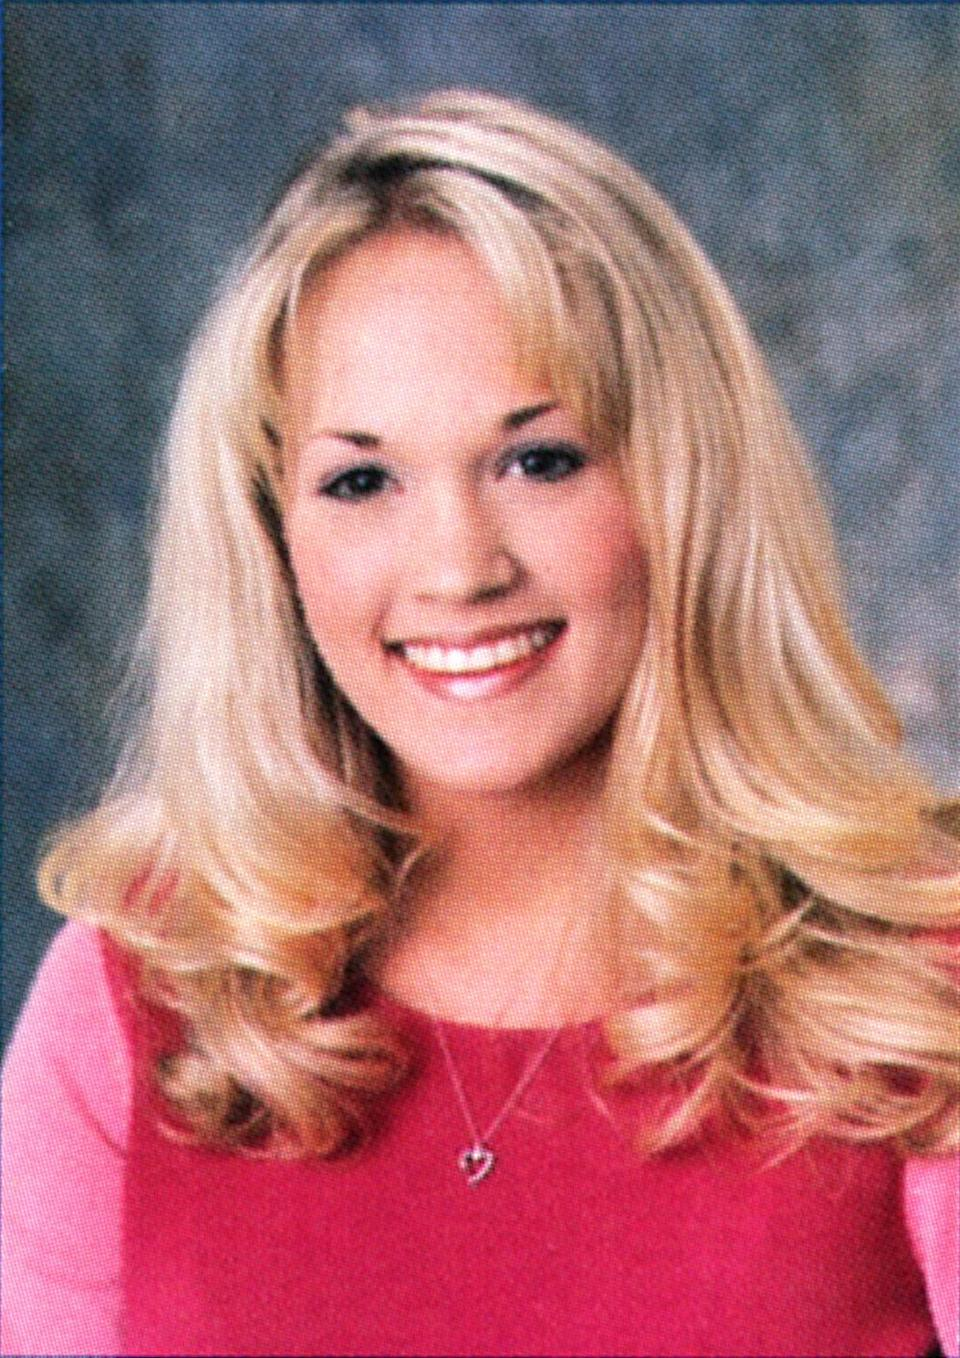 <p>Country's sweetheart, Carrie Underwood, lives up to her nickname with blonde ringlets, glossy pink lips, and a matching pink top in her Oklahoma high school senior portrait. <i>(Photo: Seth Poppel/Yearbook Library)</i> </p>